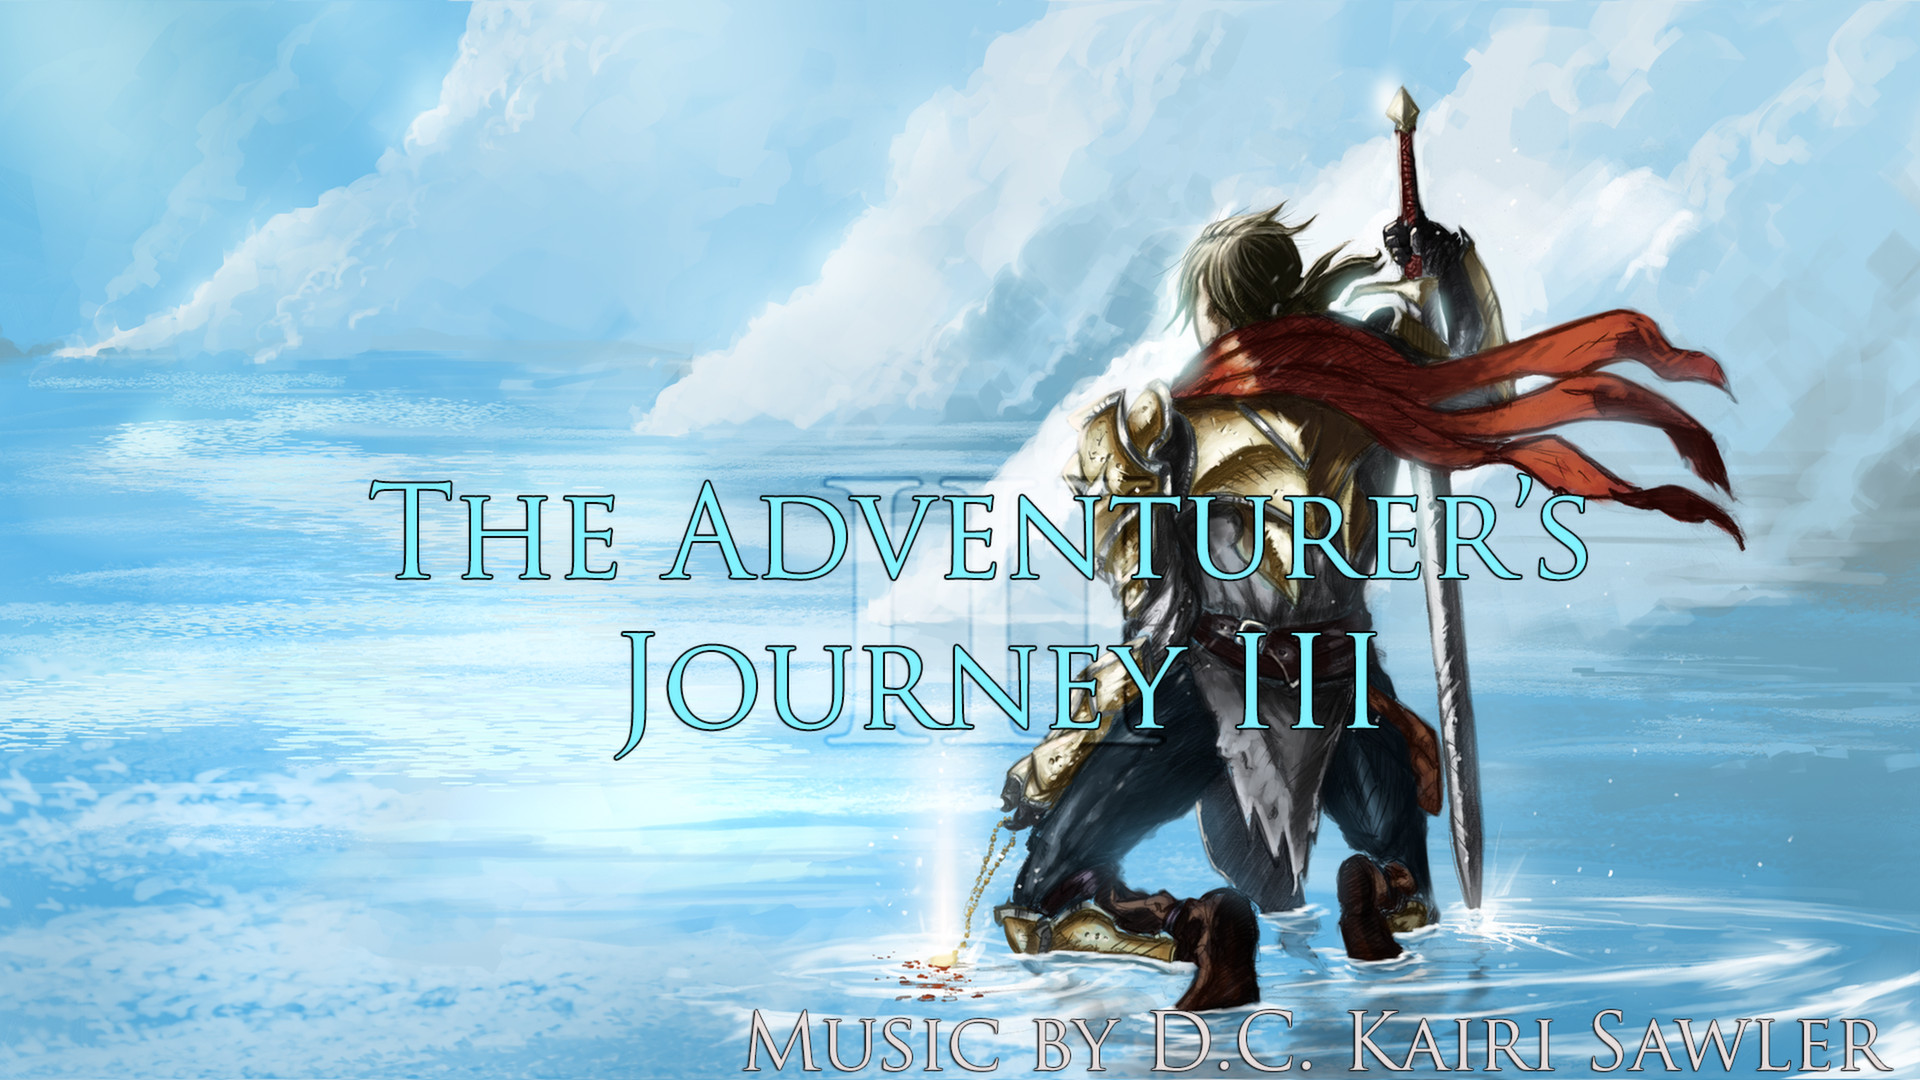 RPG Maker VX Ace - The Adventurer's Journey III screenshot